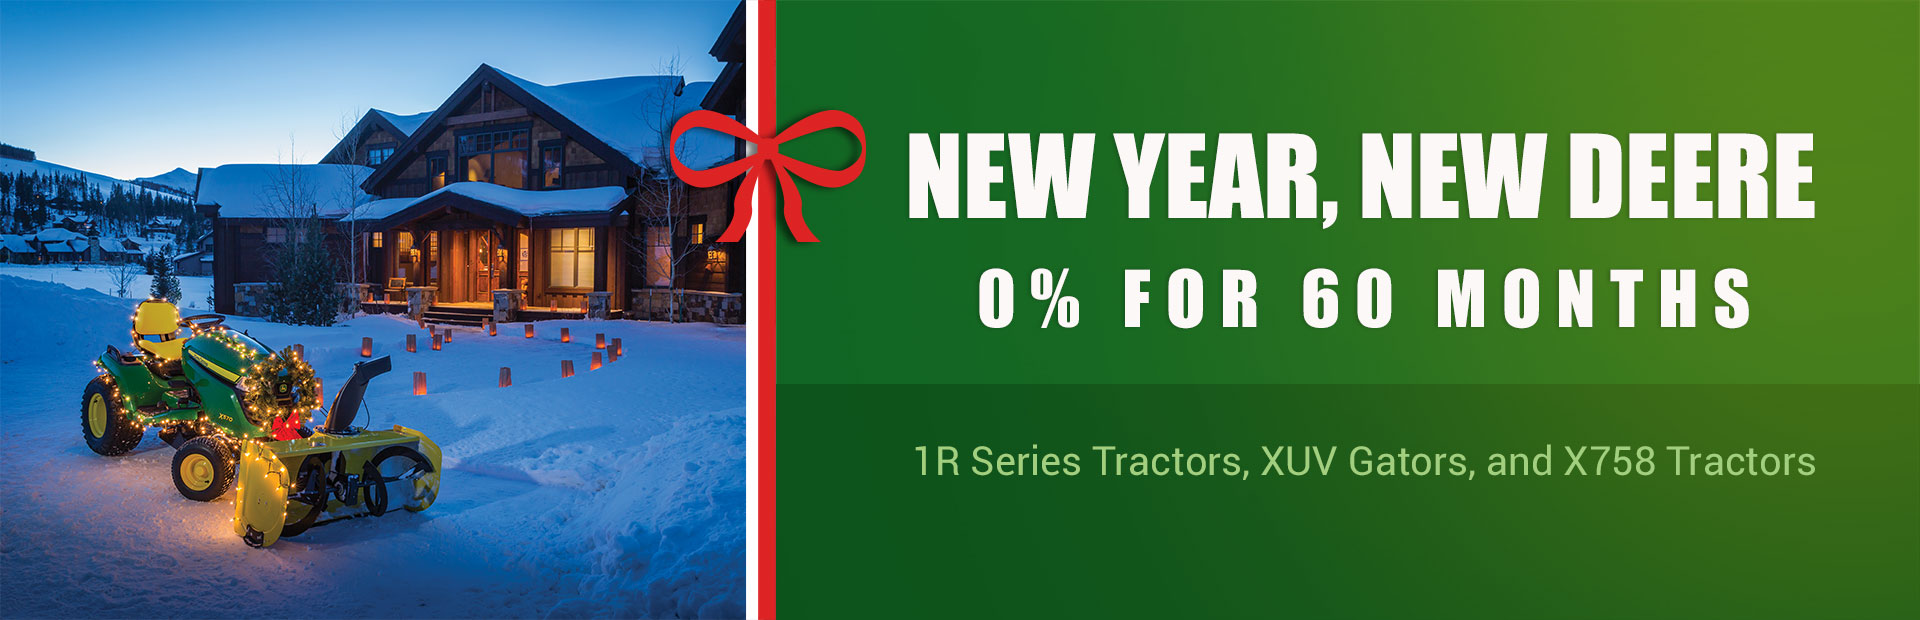 New Year, New Deere: Get 0% for 60 months on 1R Series Tractors, XUV Gators, and X758 Tractors!